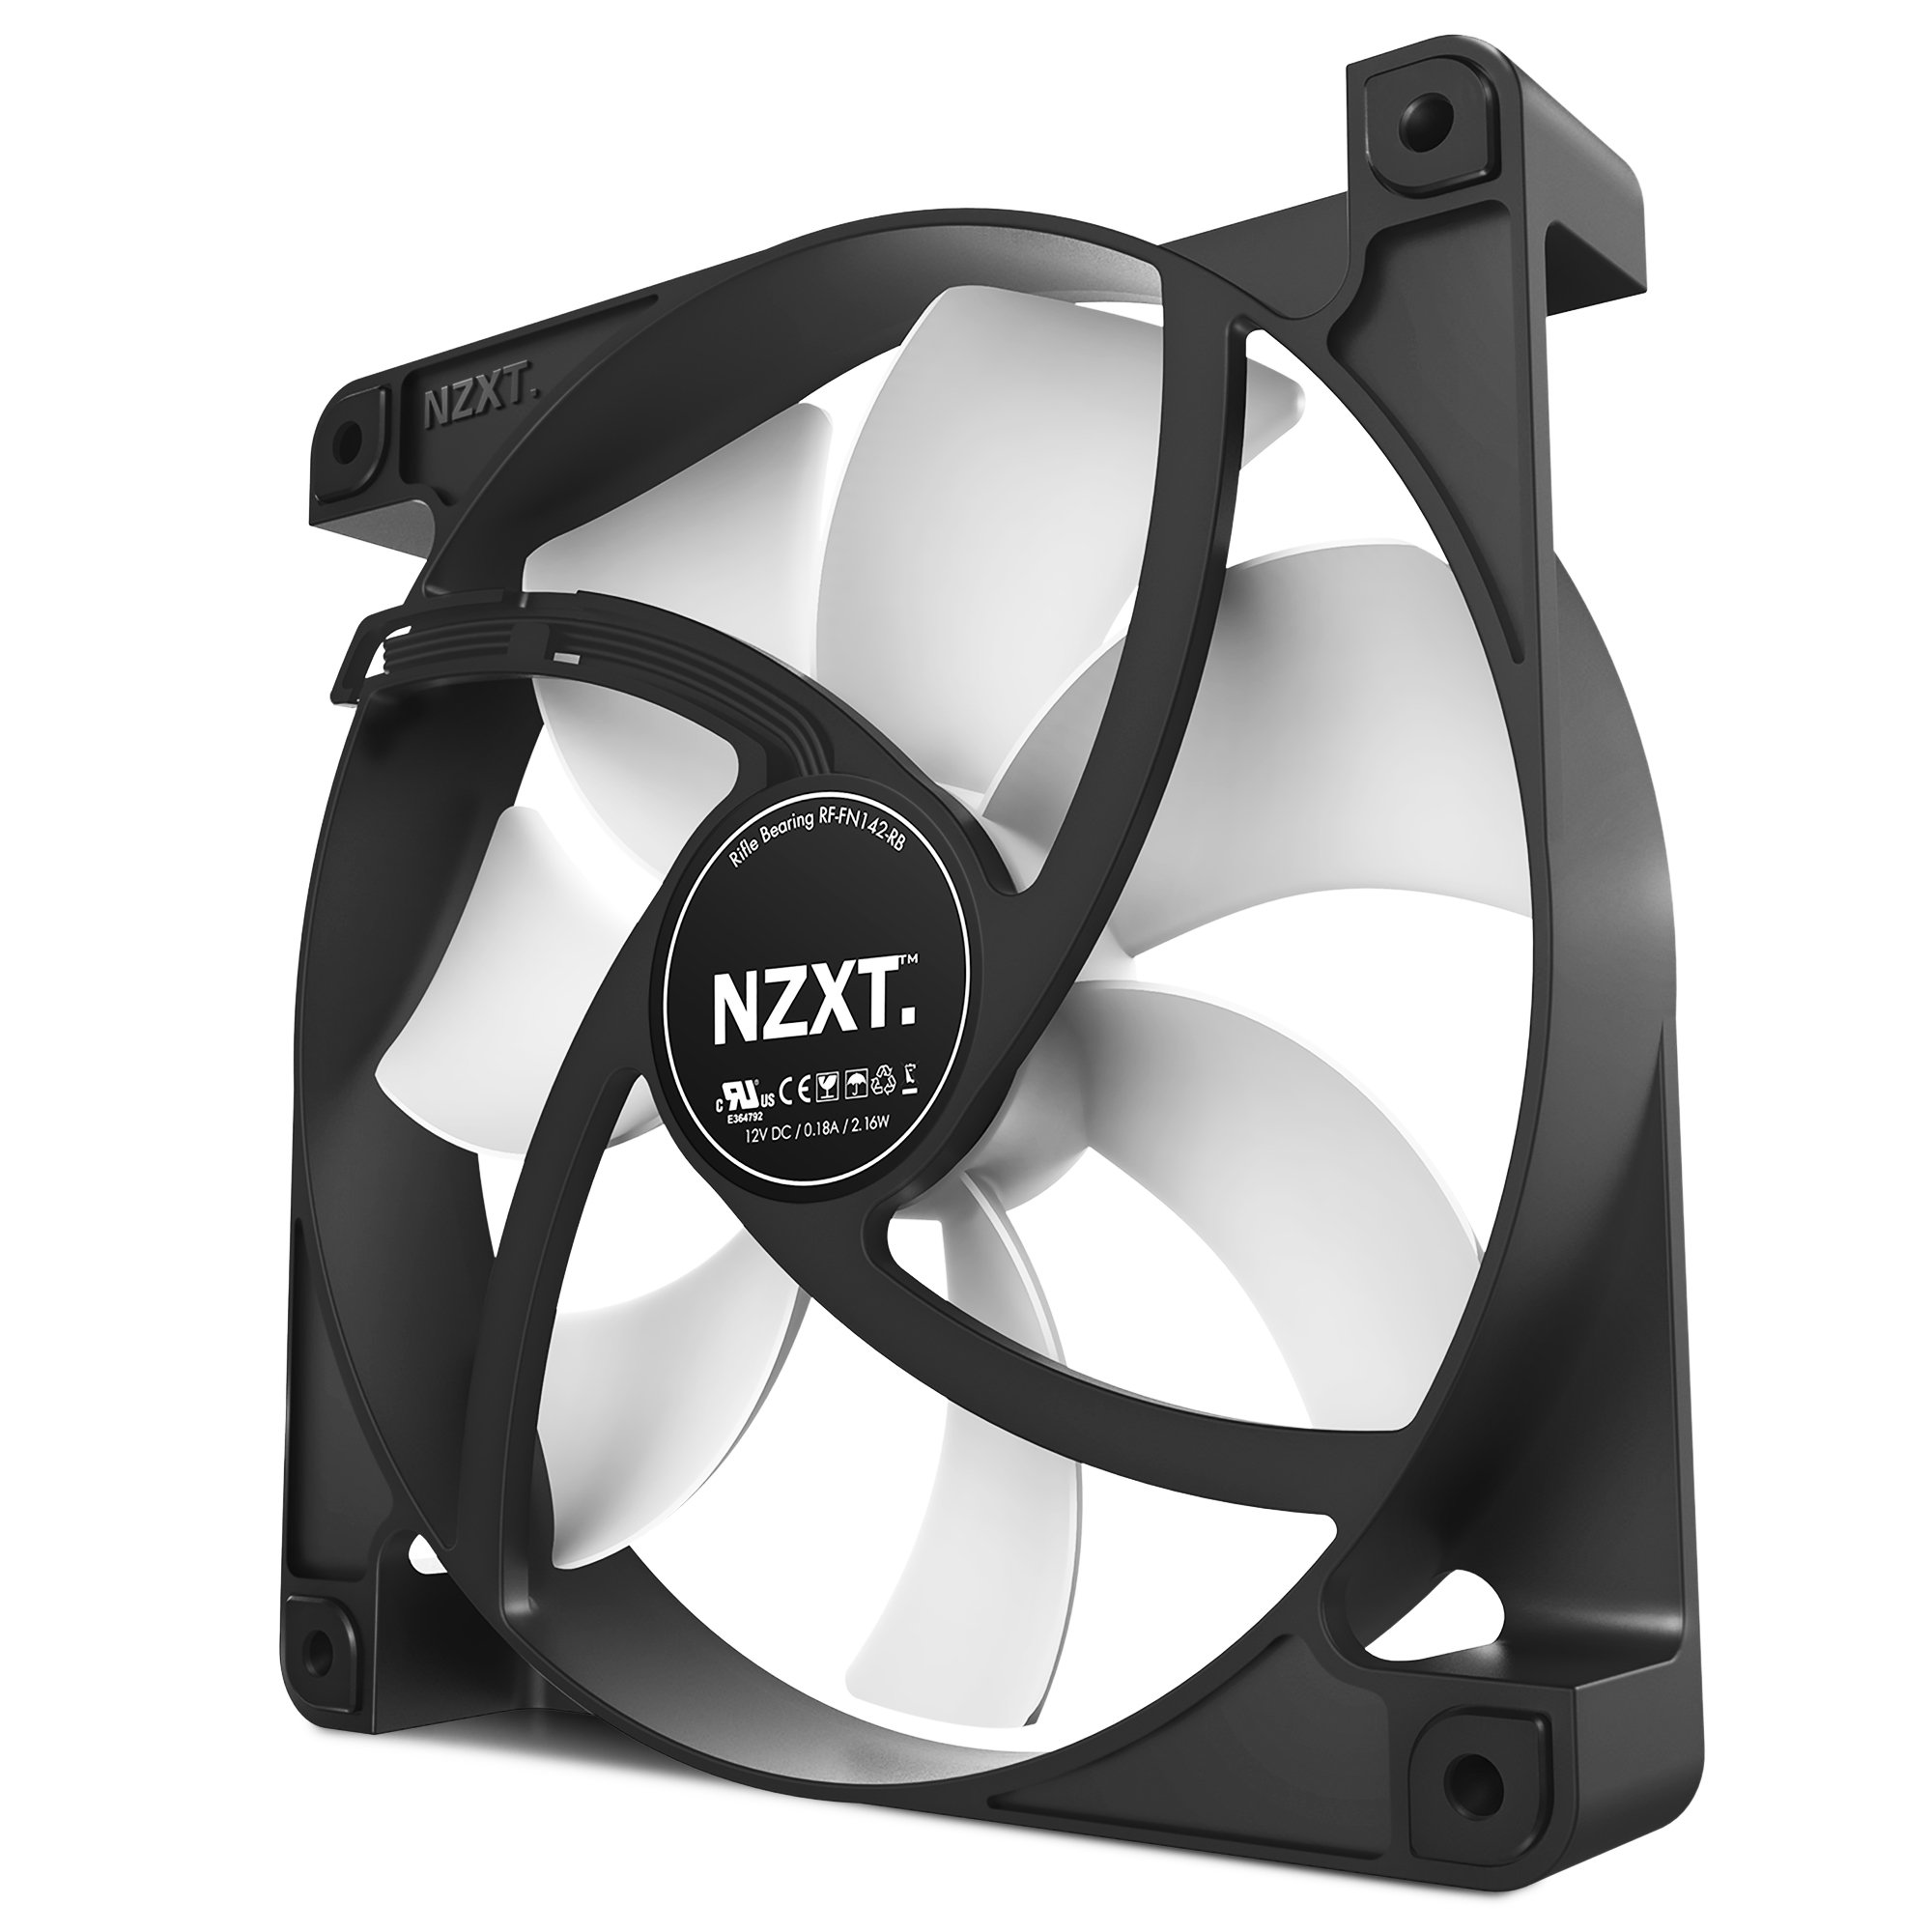 Nzxt 140mm Performance Case Fan - 140 Mm - 1000 Rpm50 Cfm - 21 Db[a] Noise - Riffle Bearing - 3-pin - Rubber - 4.6 Year Life (152486)